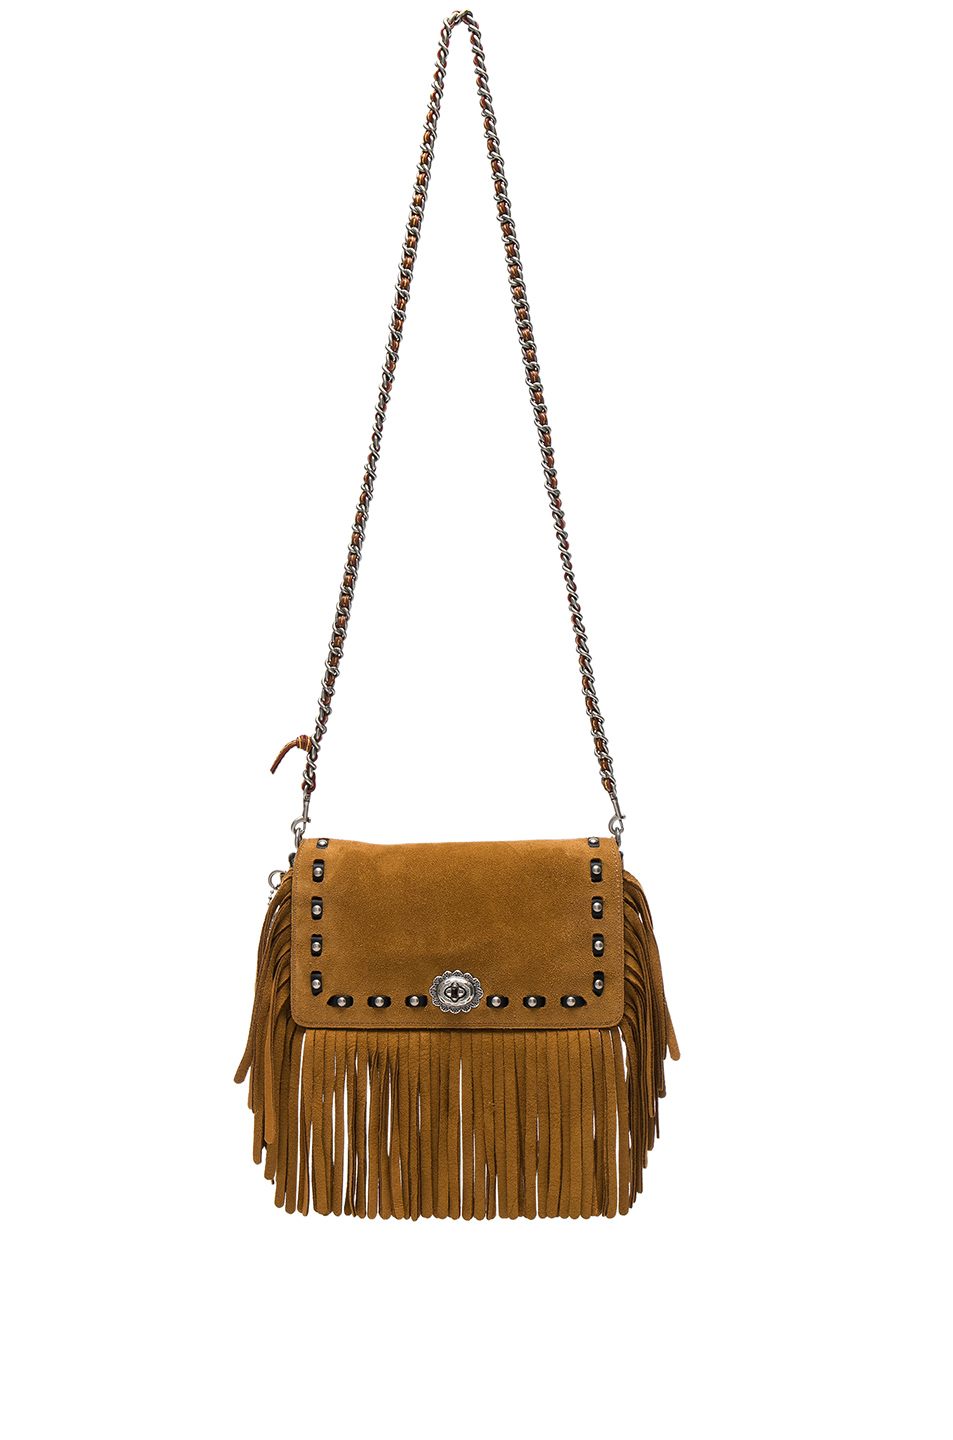 Coach 1941 Suede Fringe Dinky Bag in Brown